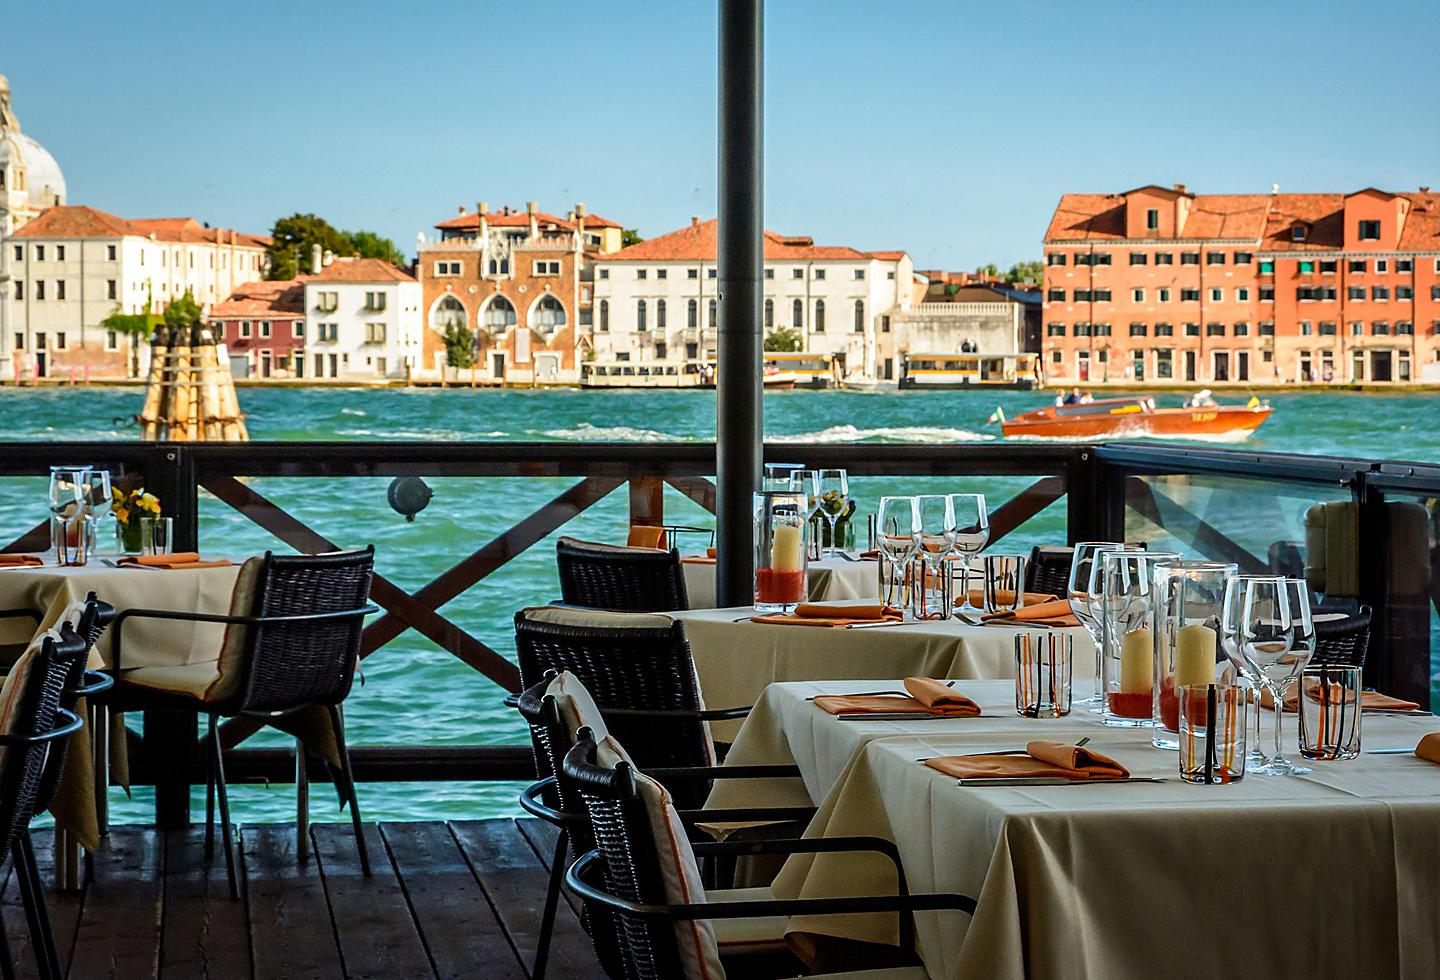 Venice, Italy, waterfront eatery and cafe